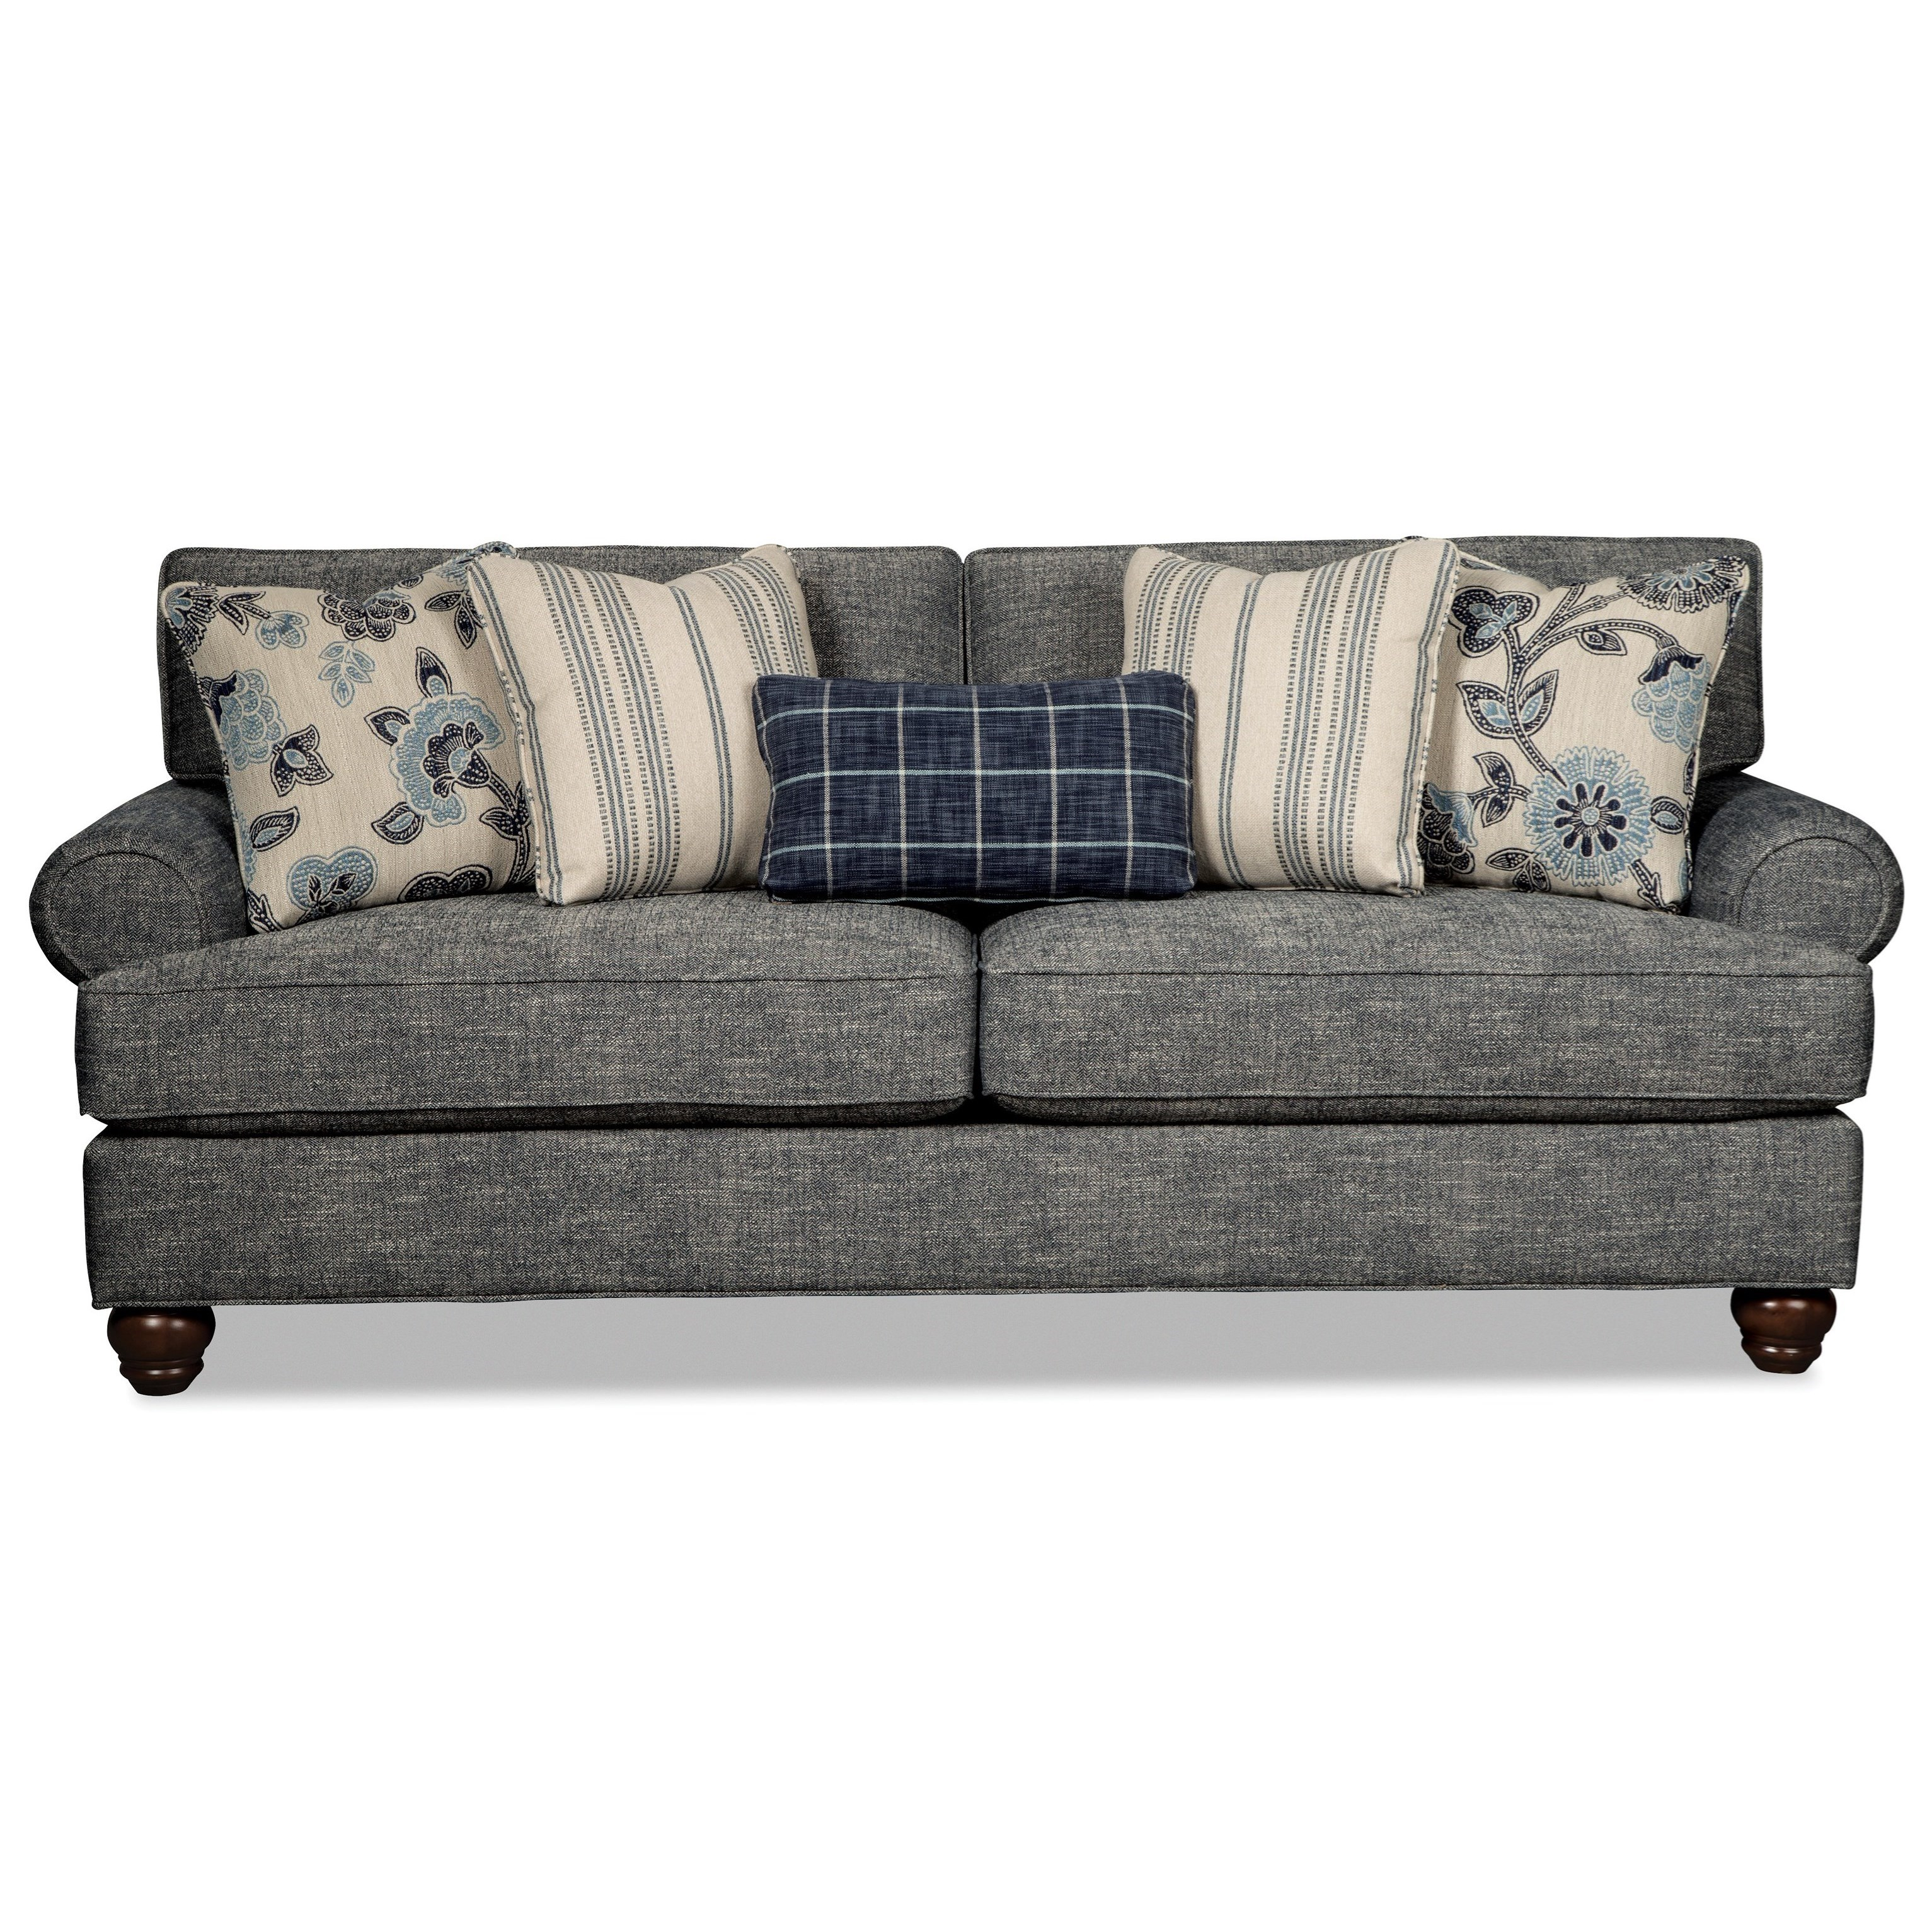 773550 Sofa by Craftmaster at Home Collections Furniture